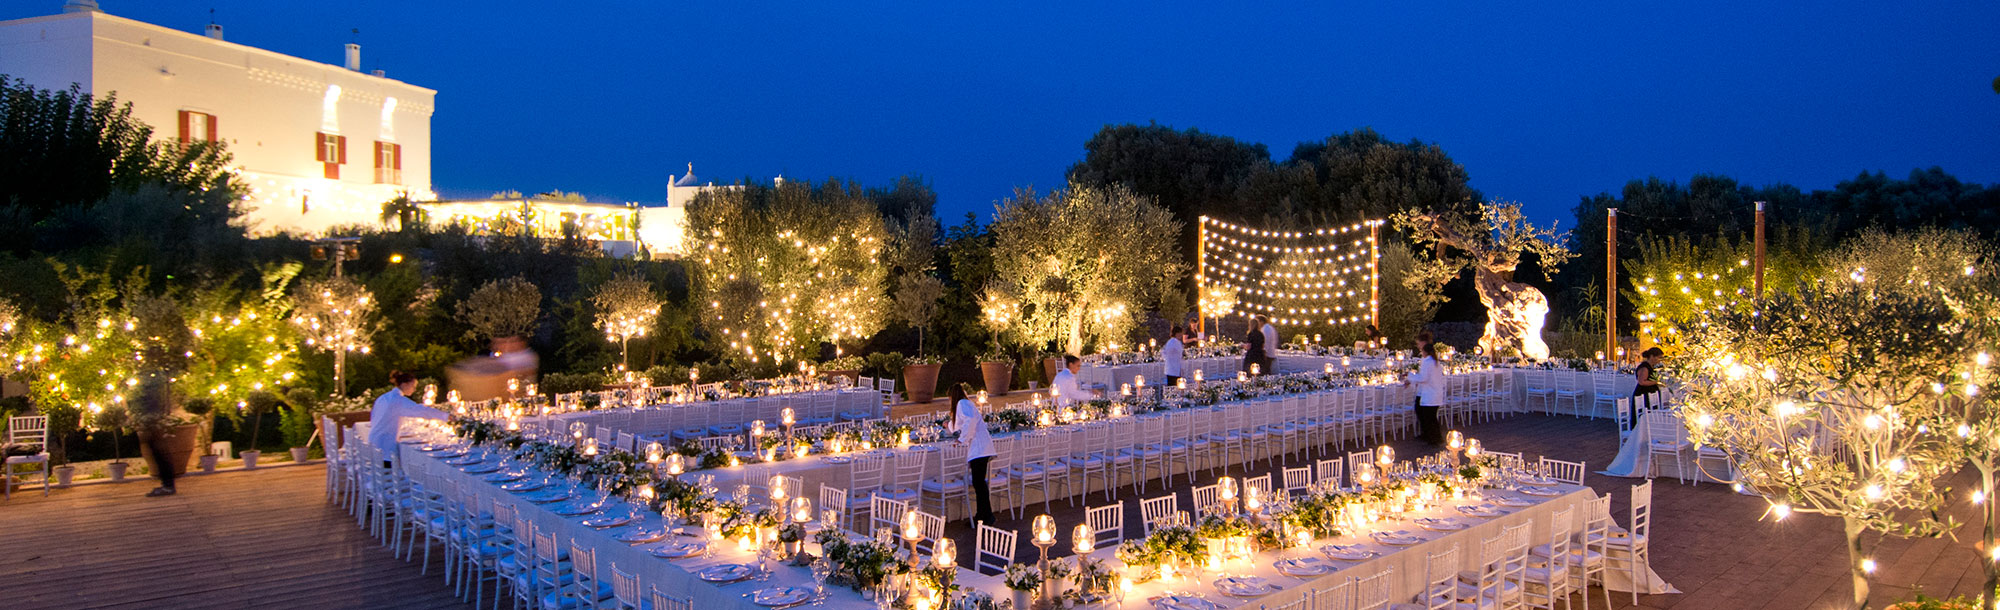 wedding in apulia, wedding in Italy